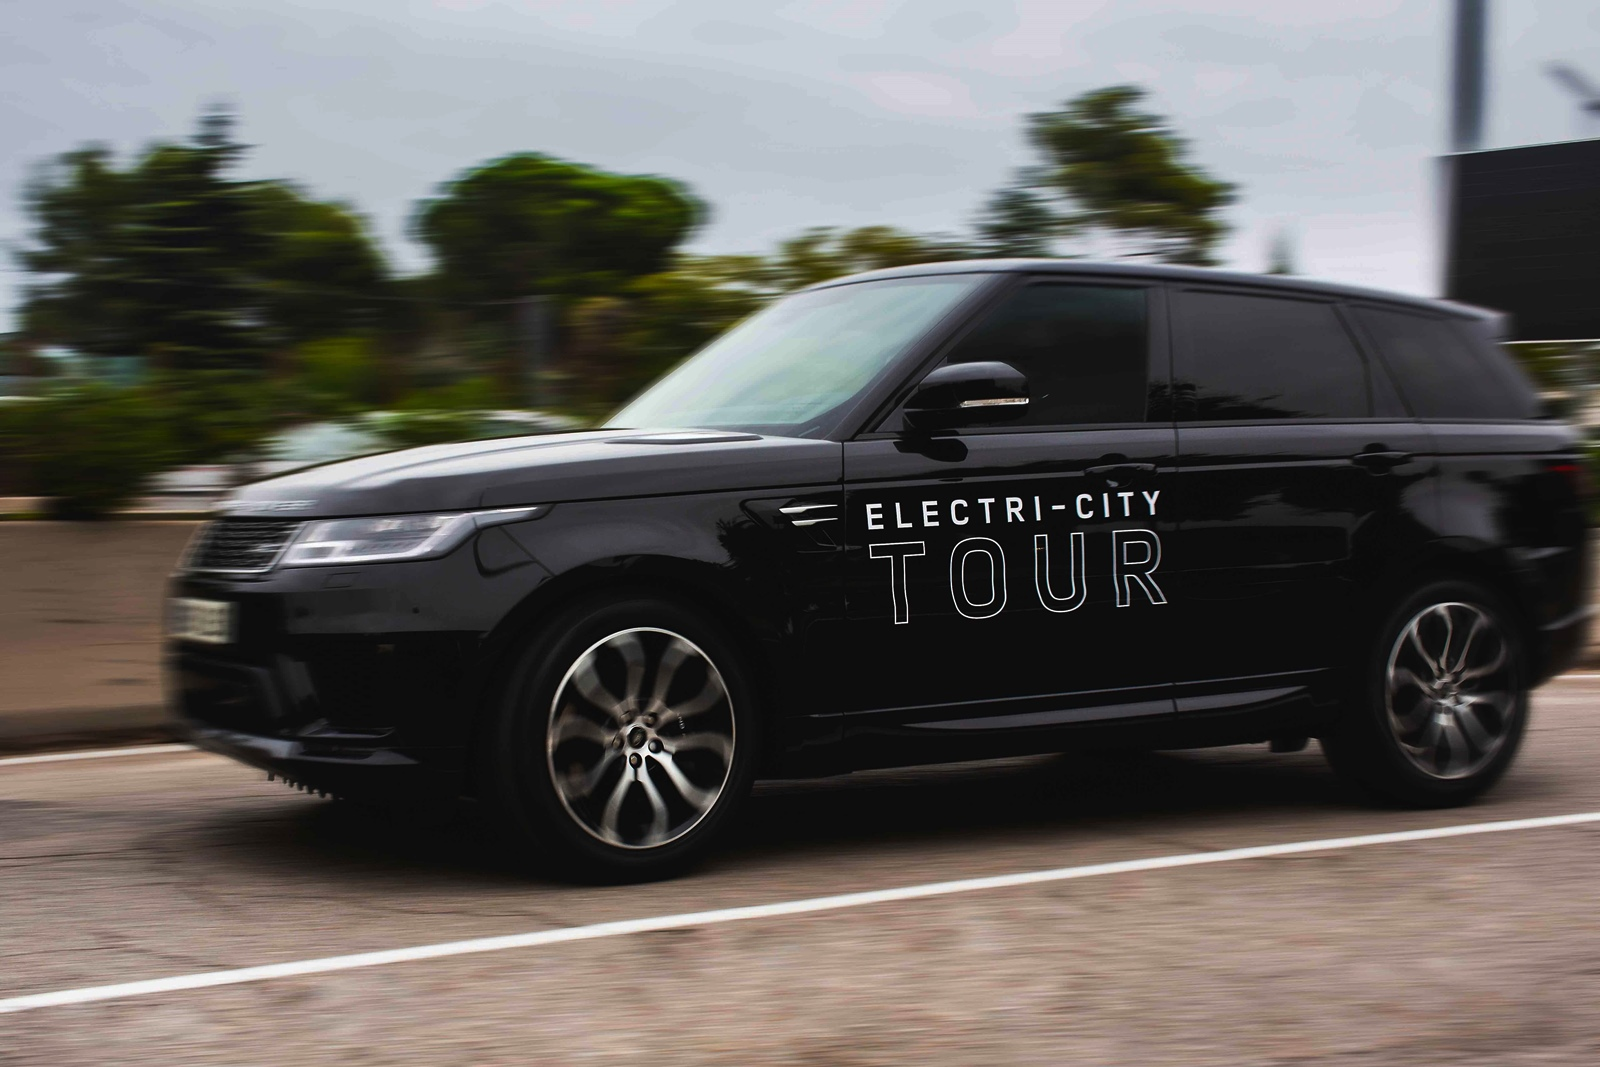 Electri City Tour Jaguar Land Rover (2)